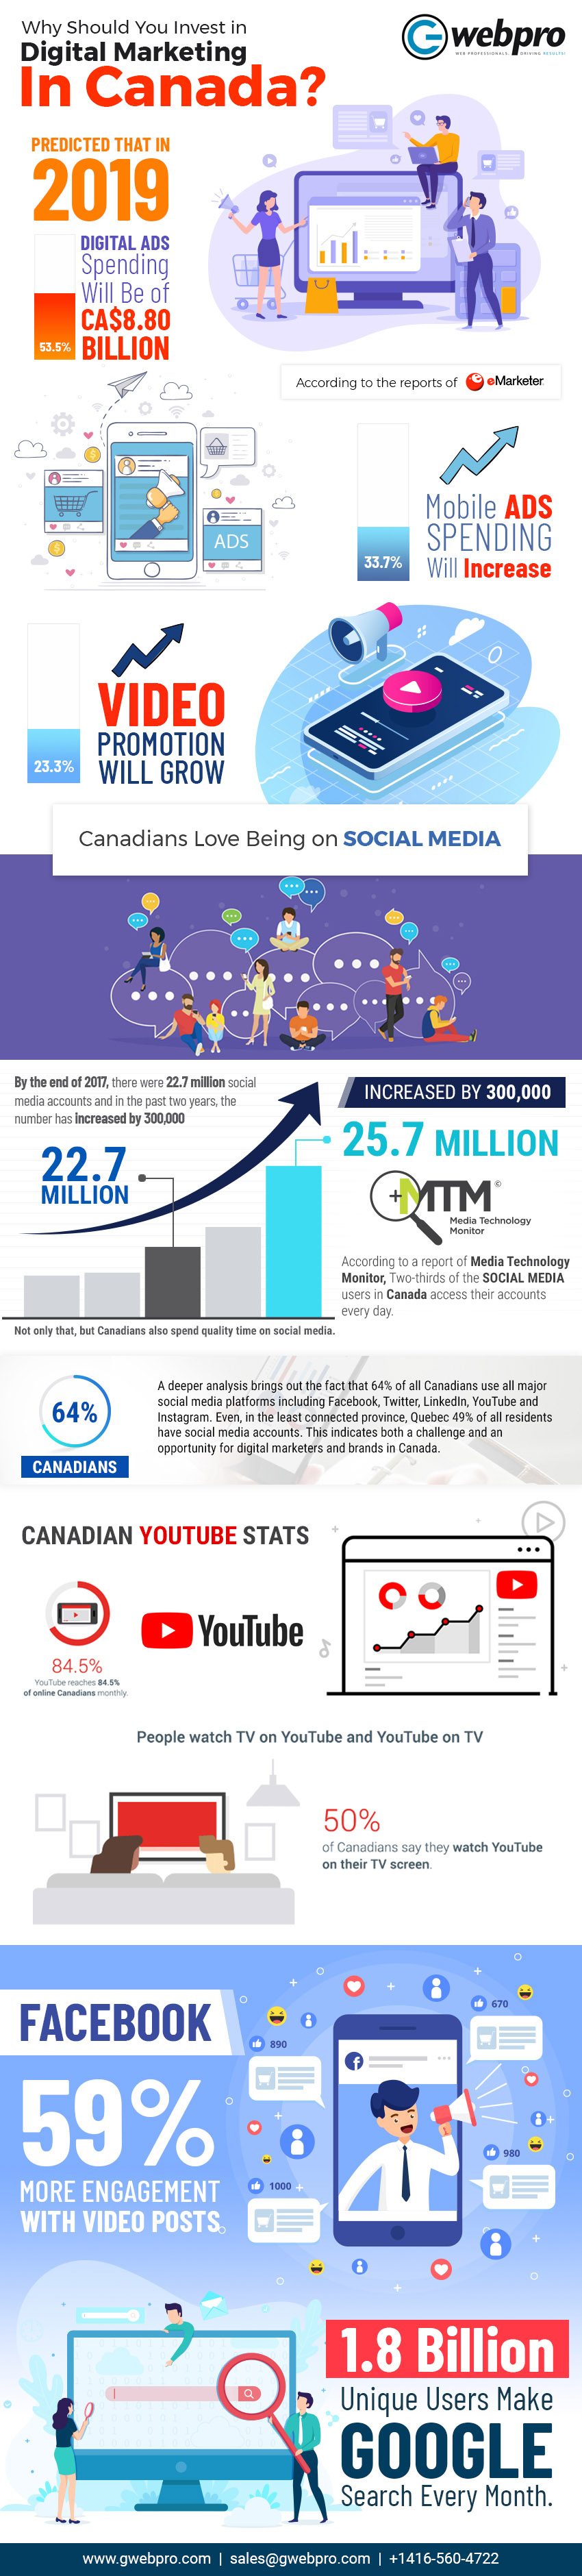 Why Should You Invest in Digital Marketing in Canada?